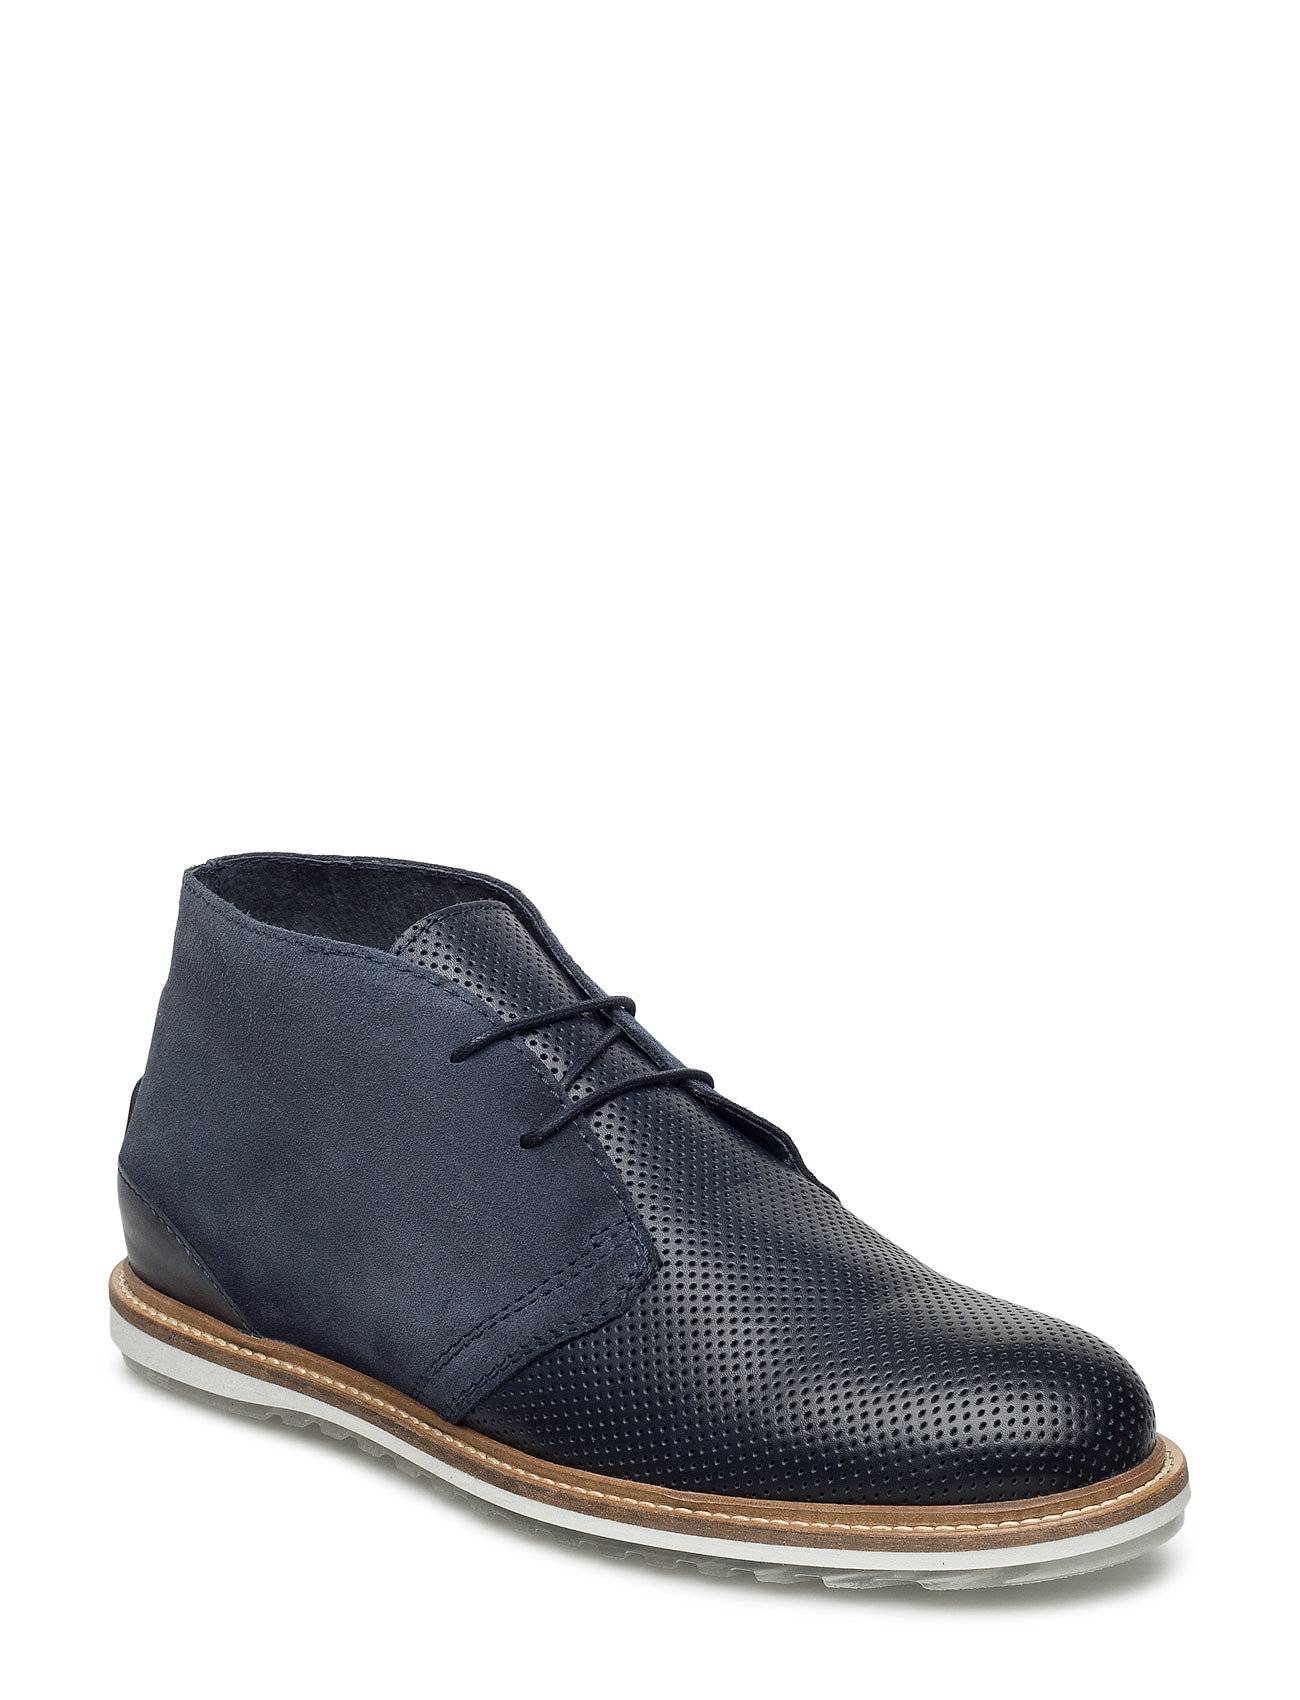 Bianco Perforated Boot Jfm17